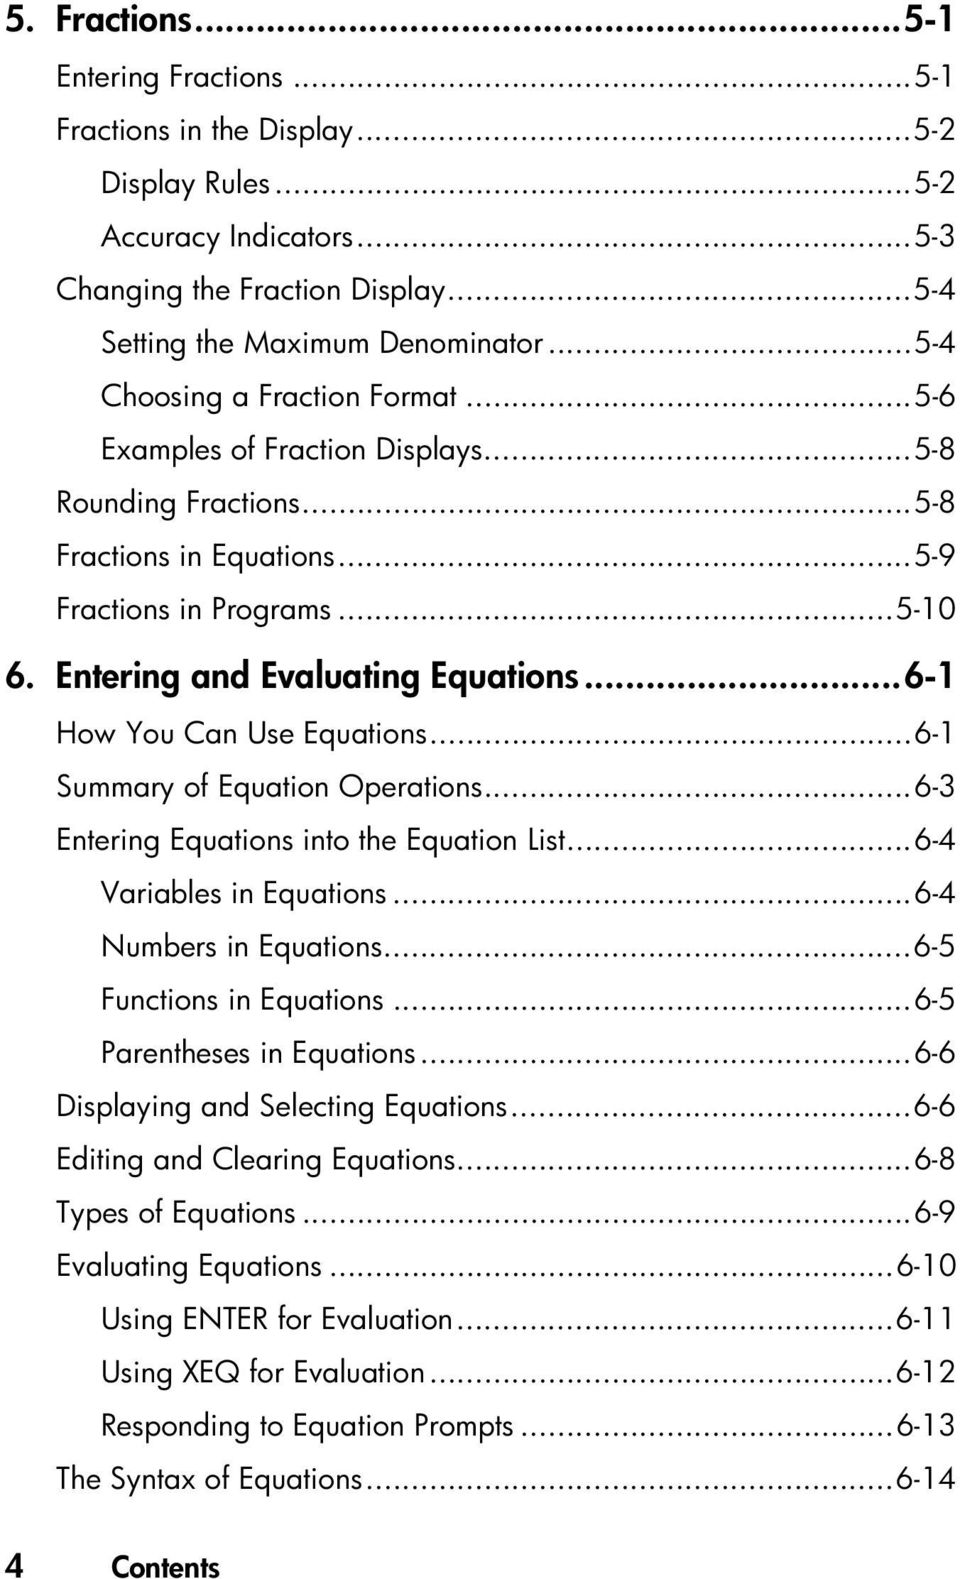 ..6-1 How You Can Use Equations...6-1 Summary of Equation Operations...6-3 Entering Equations into the Equation List...6-4 Variables in Equations...6-4 Numbers in Equations...6-5 Functions in Equations.